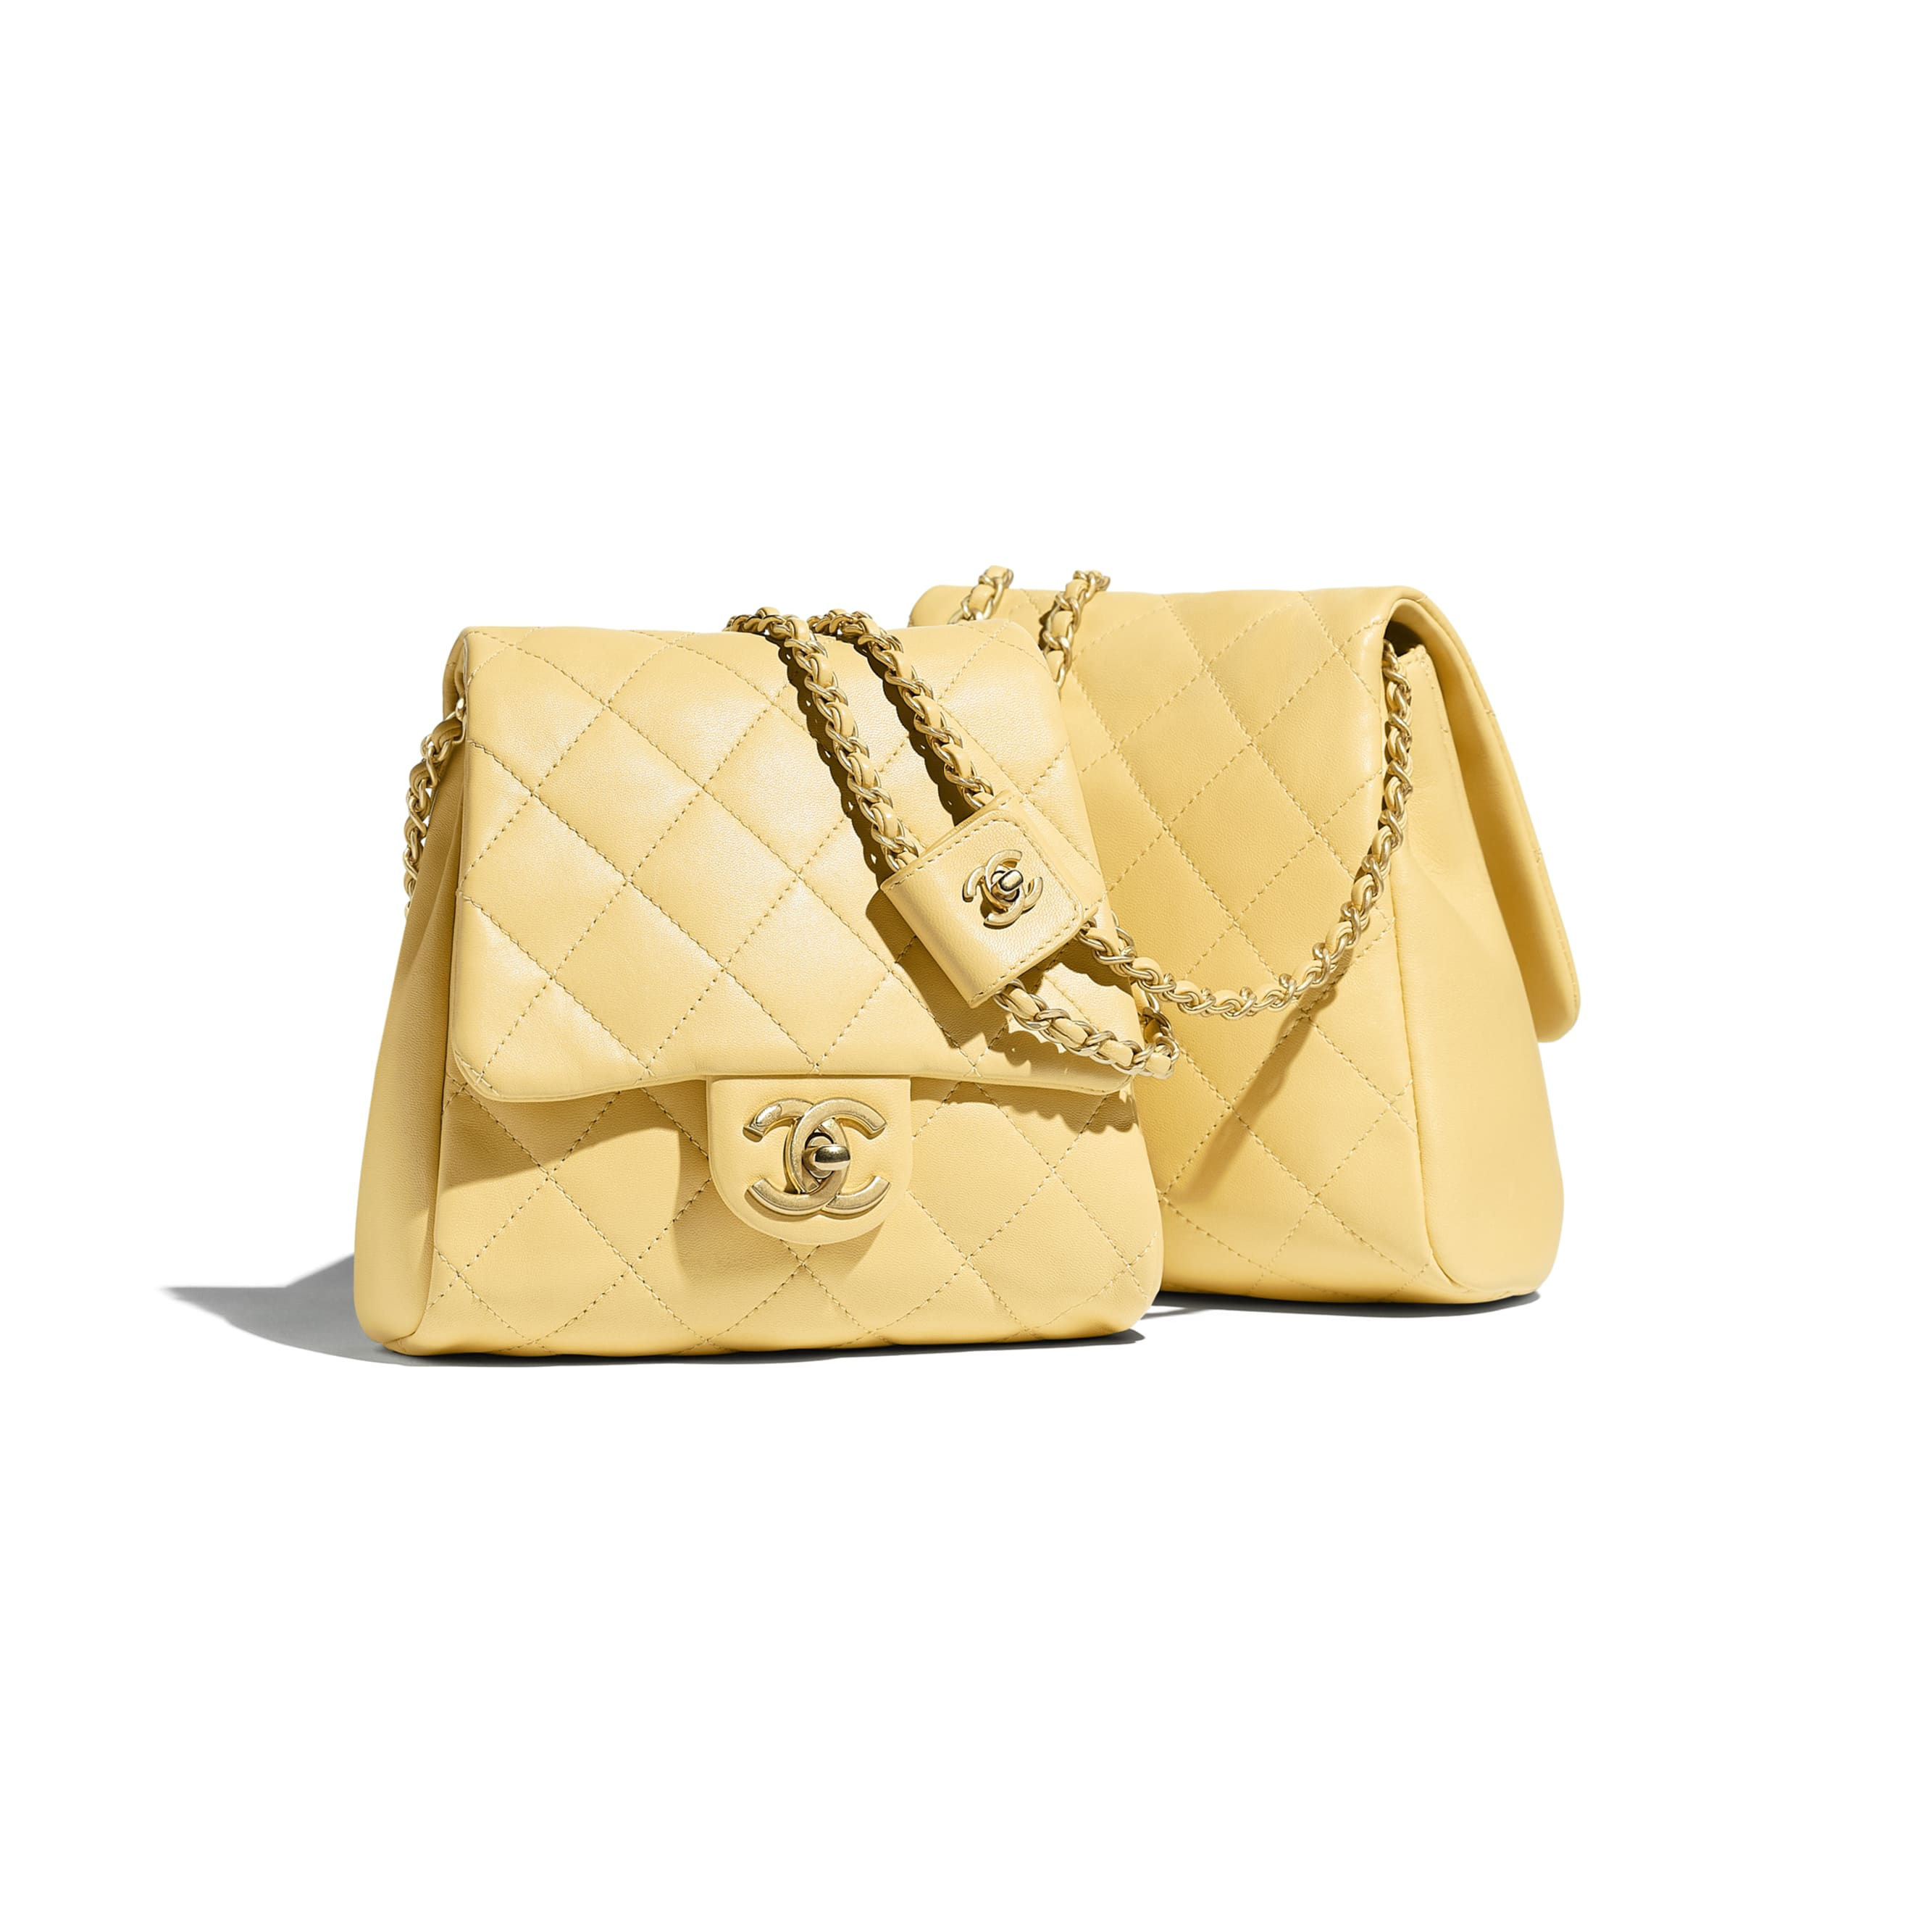 Side-Packs - Yellow - Lambskin & Gold-Tone Metal - Default view - see standard sized version